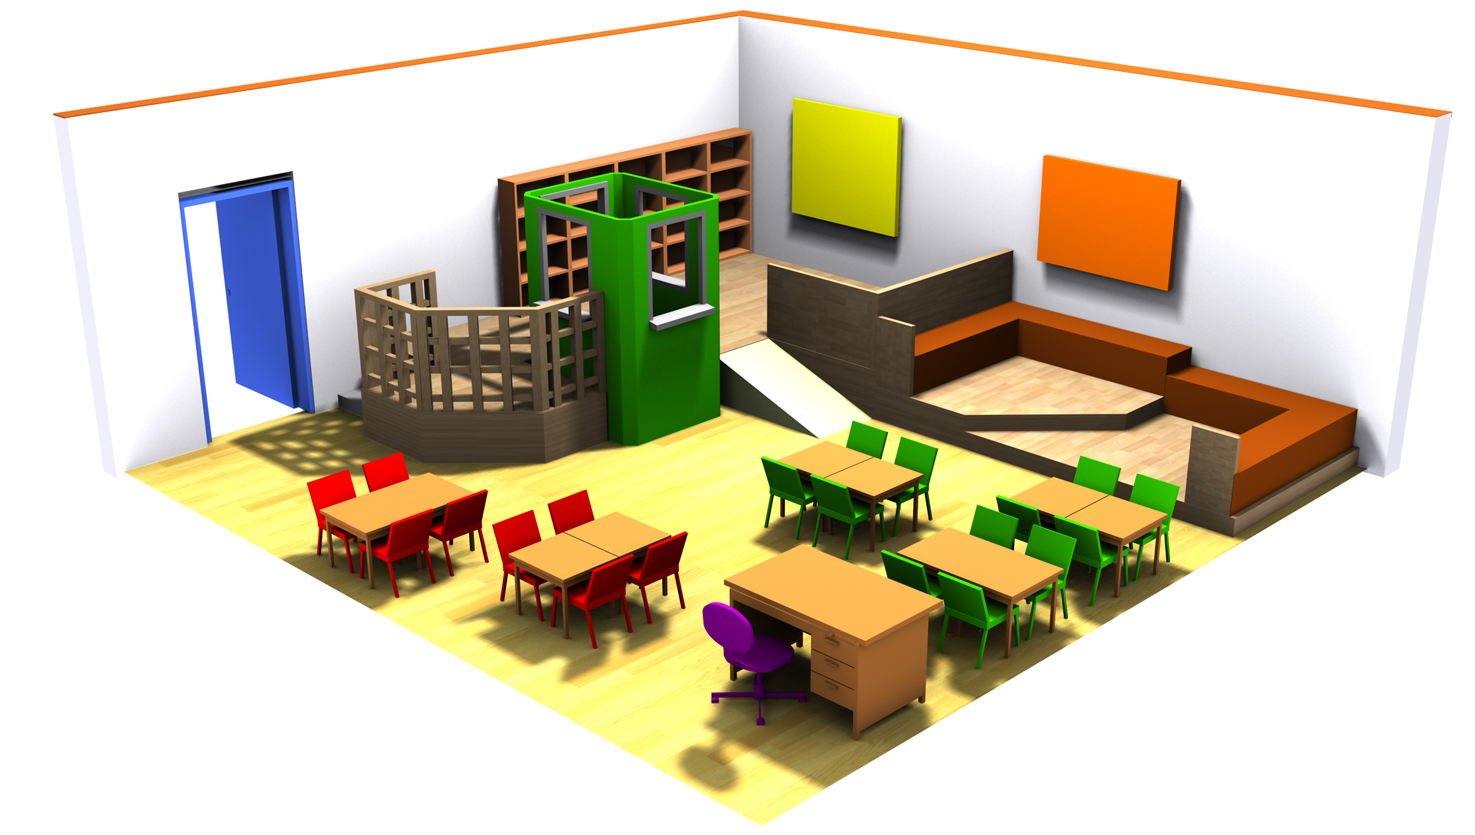 The typical classroom after its redesign to function in the cooperative approach